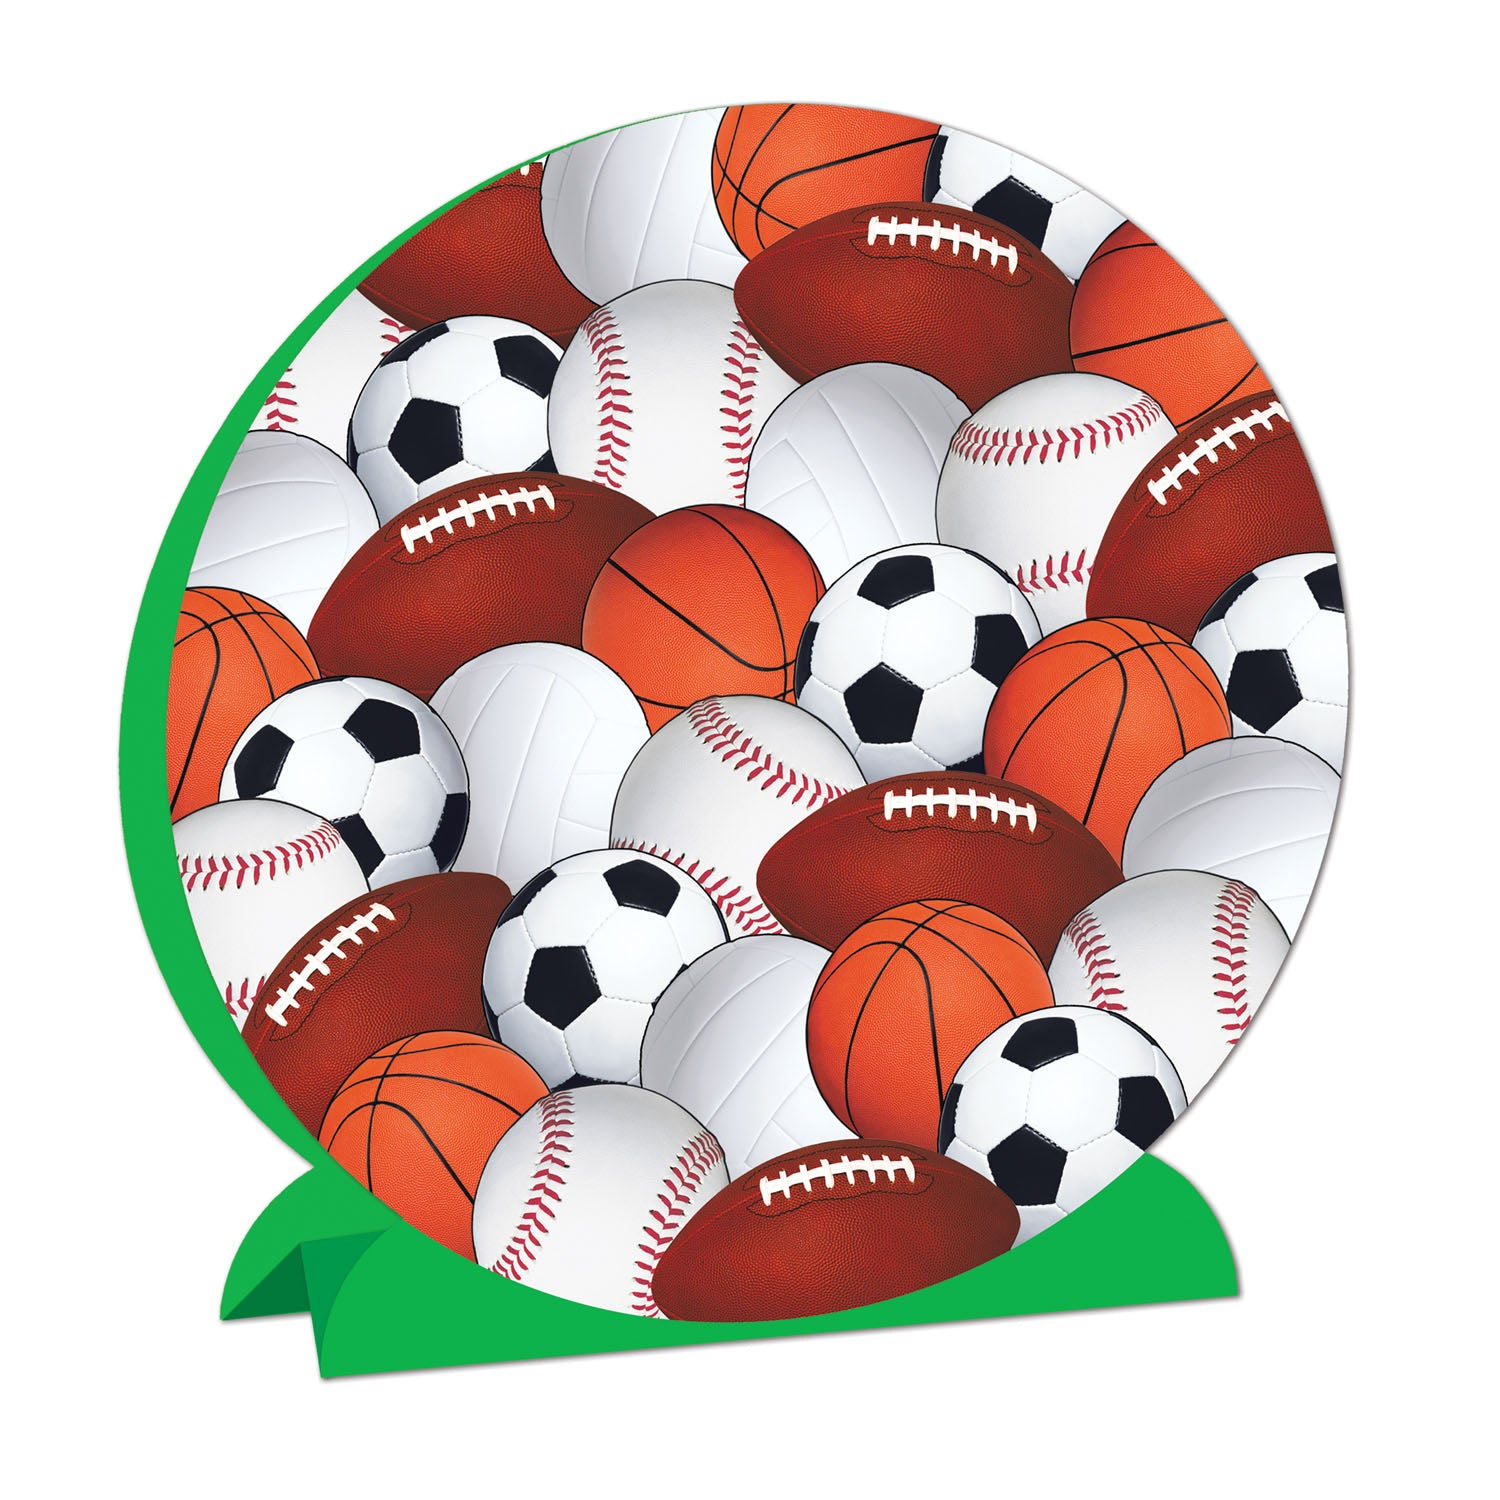 3-D Sports Centerpiece by Beistle - Sports Theme Decorations